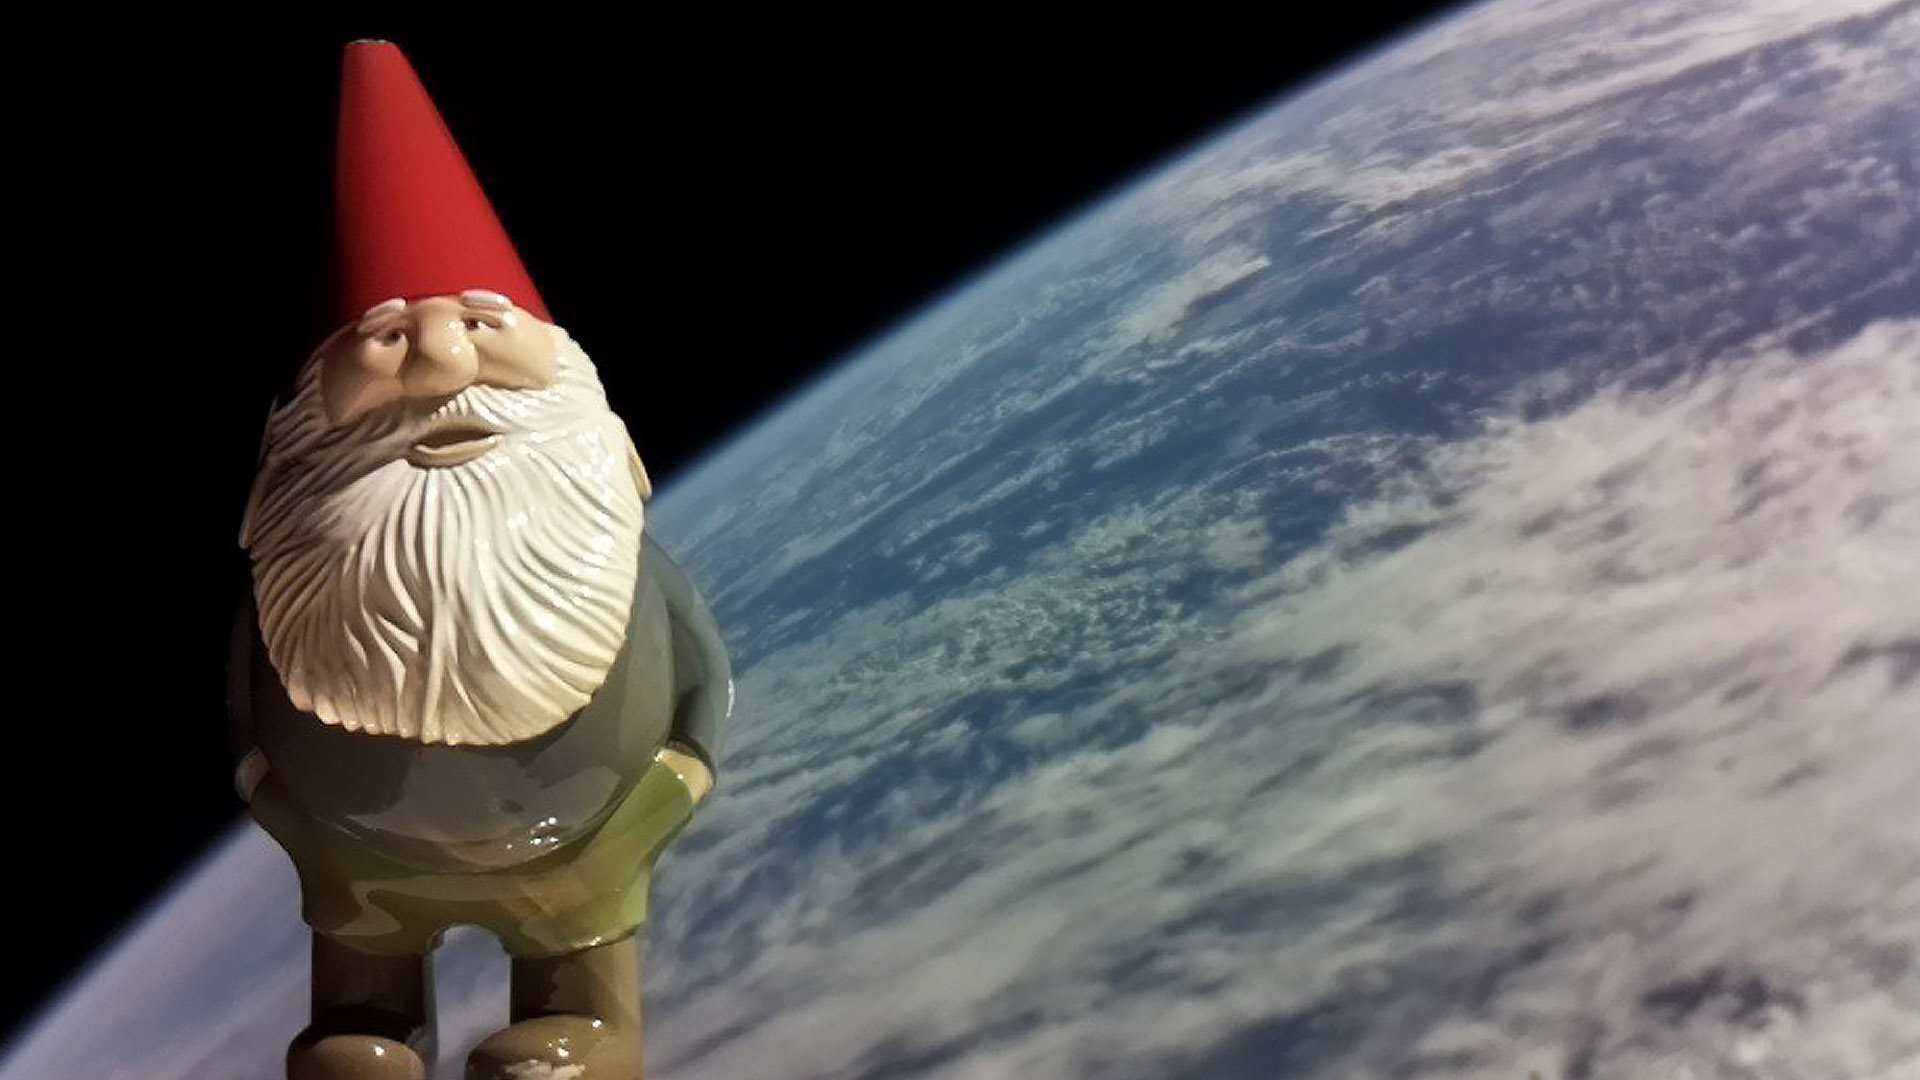 Lord Gaben punts gnome into space, donates 6k to charity as a result